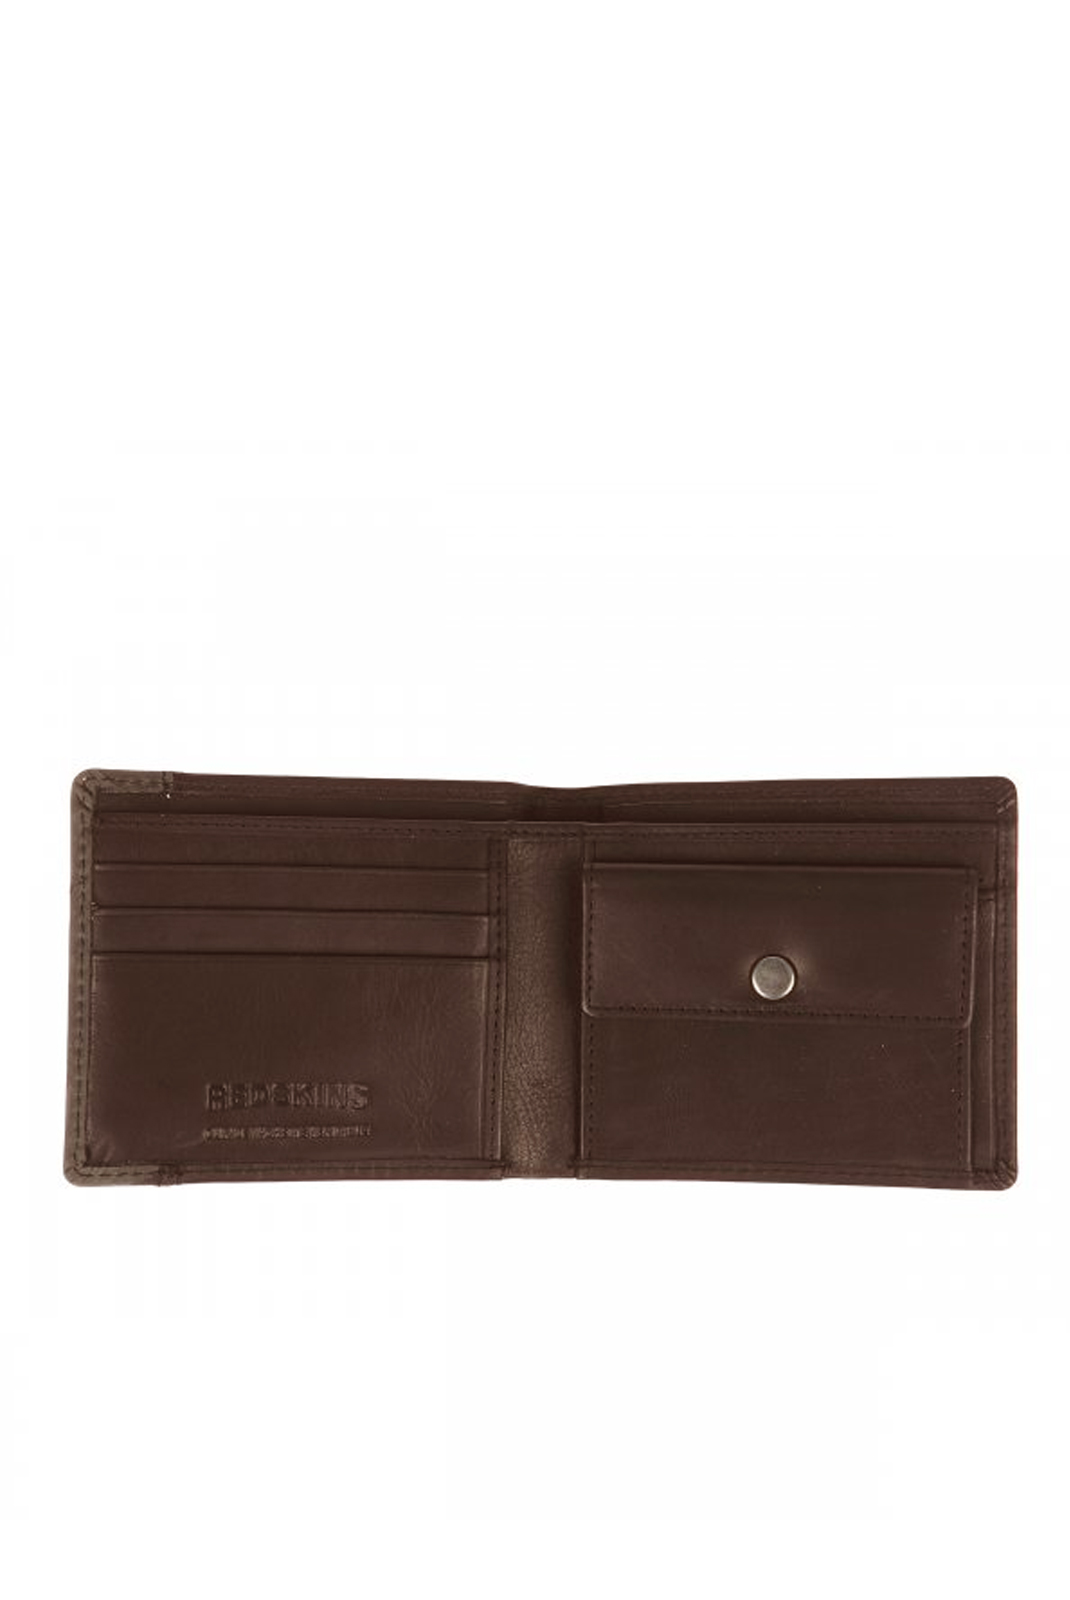 REDSKINS PORTEFEUILLE CUIR FACE MARRON HOMME